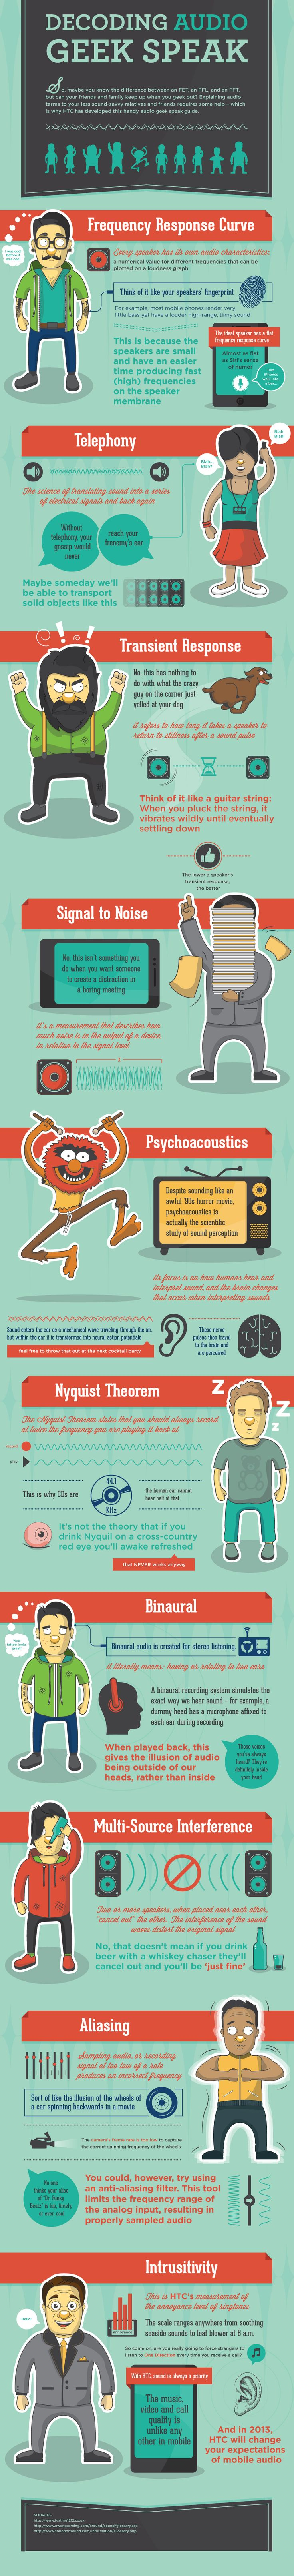 Decoding #Audio #Geek Speak  HTC Infographic